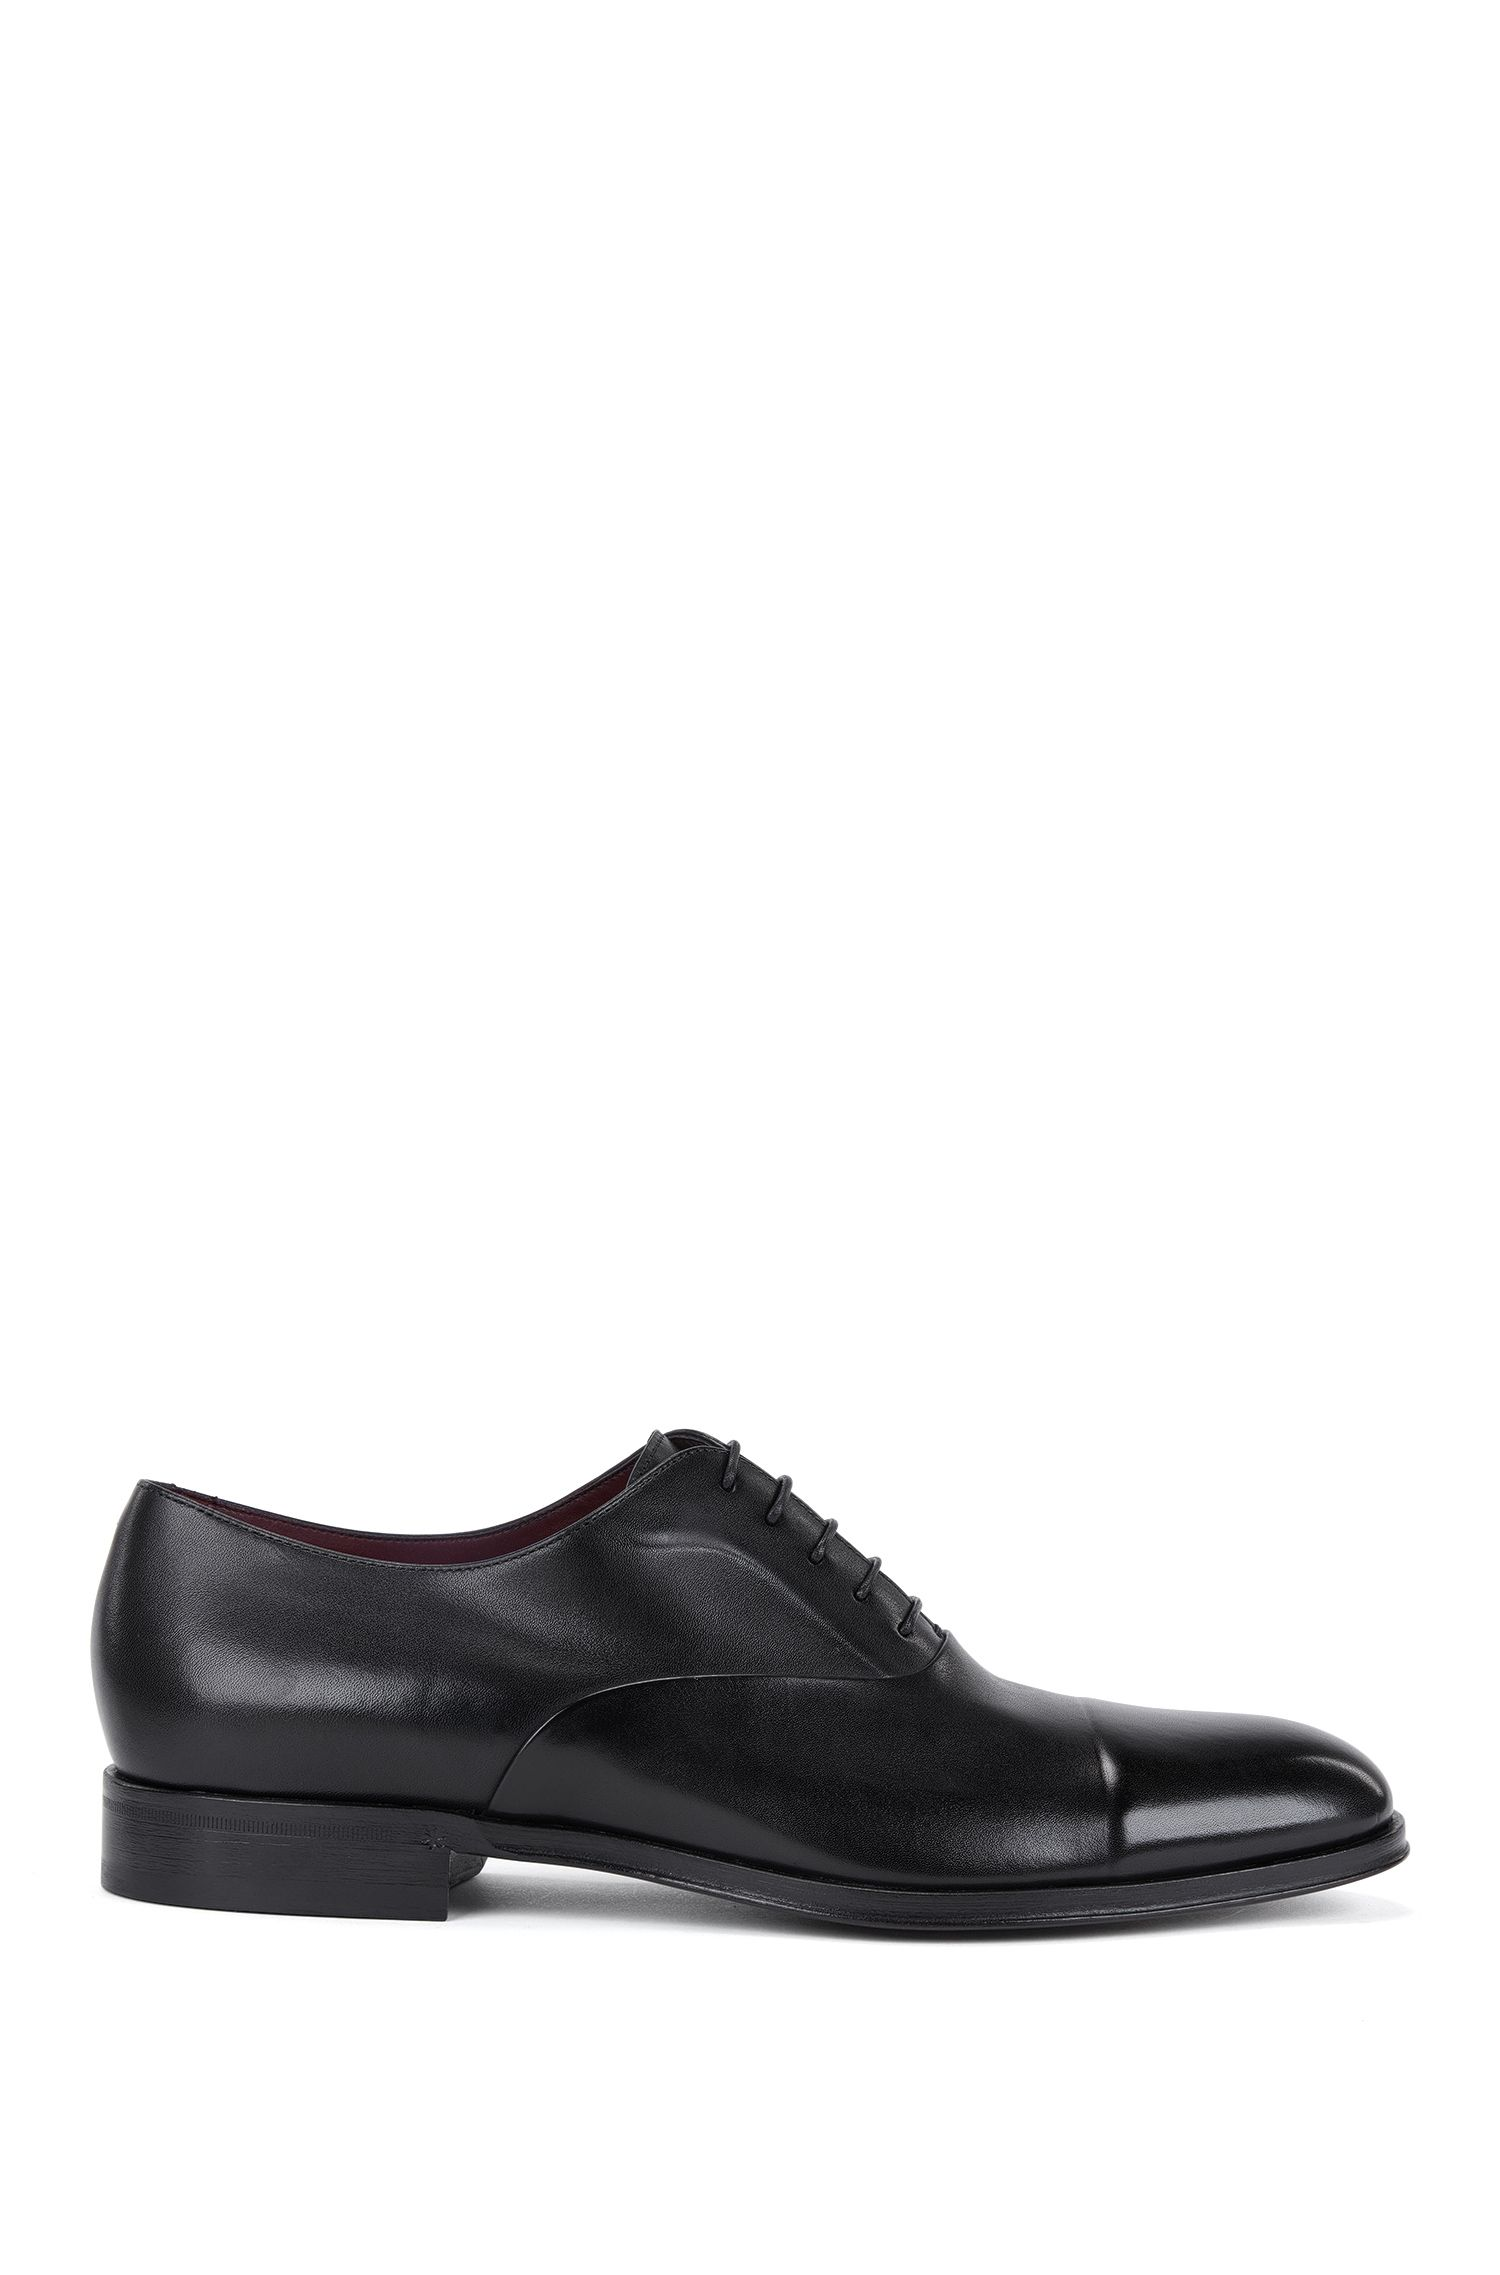 Oxford shoes in burnished calfskin